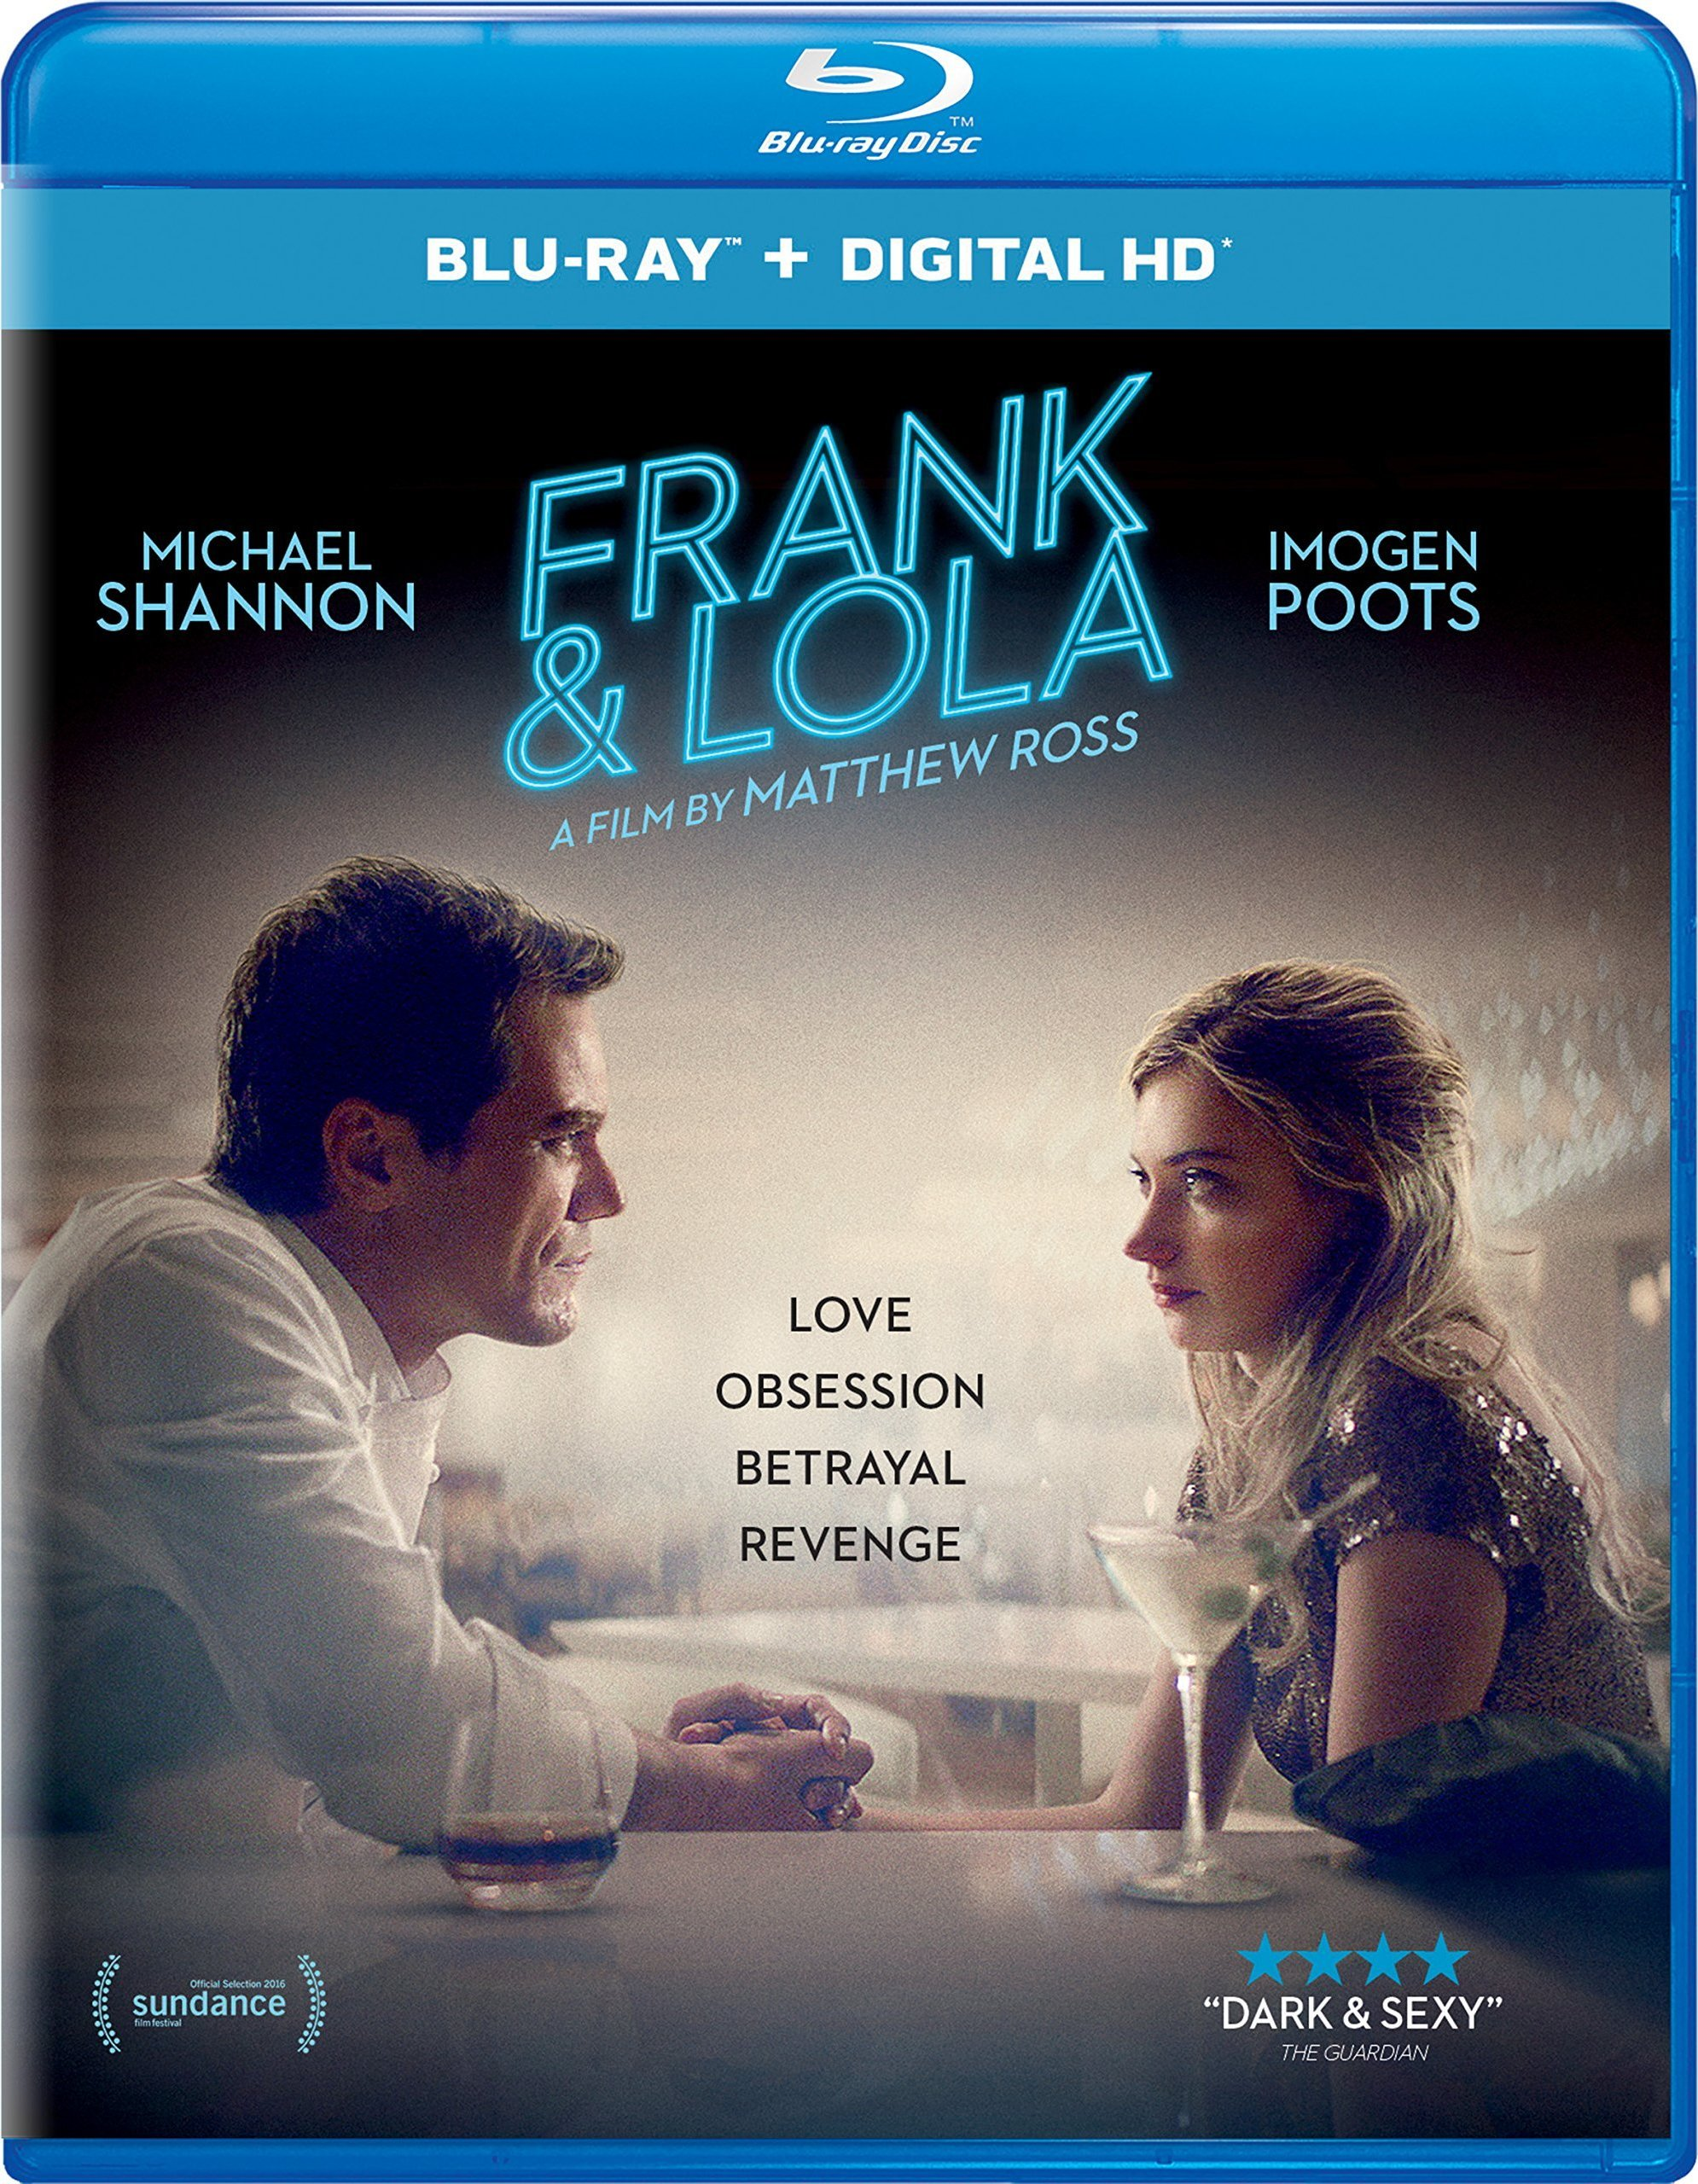 Frank & LolaBlu-ray Review